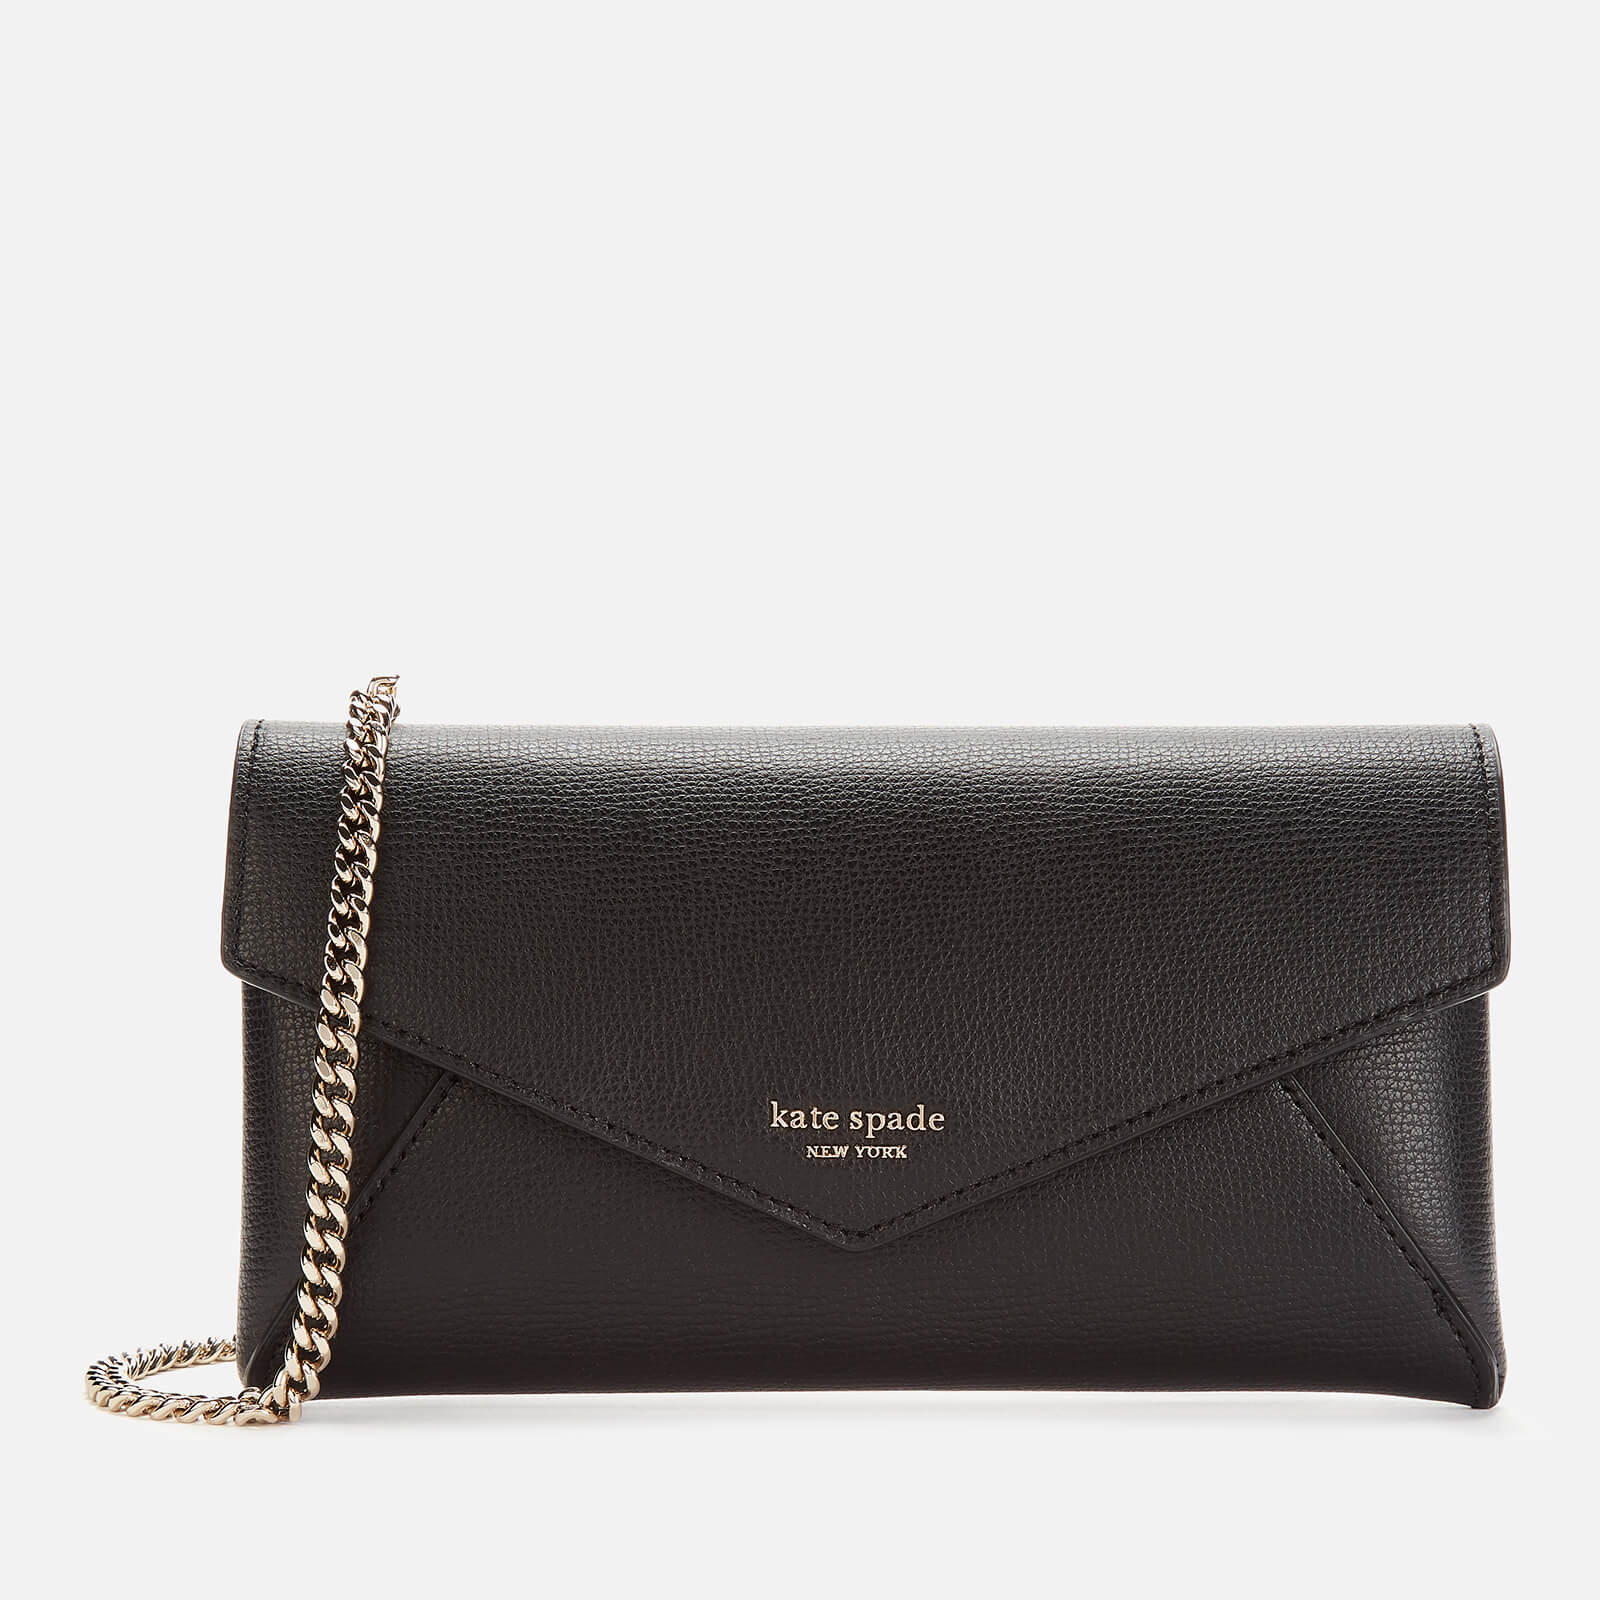 Kate Spade New York Women's Sylvia Chain Clutch Bag - Black